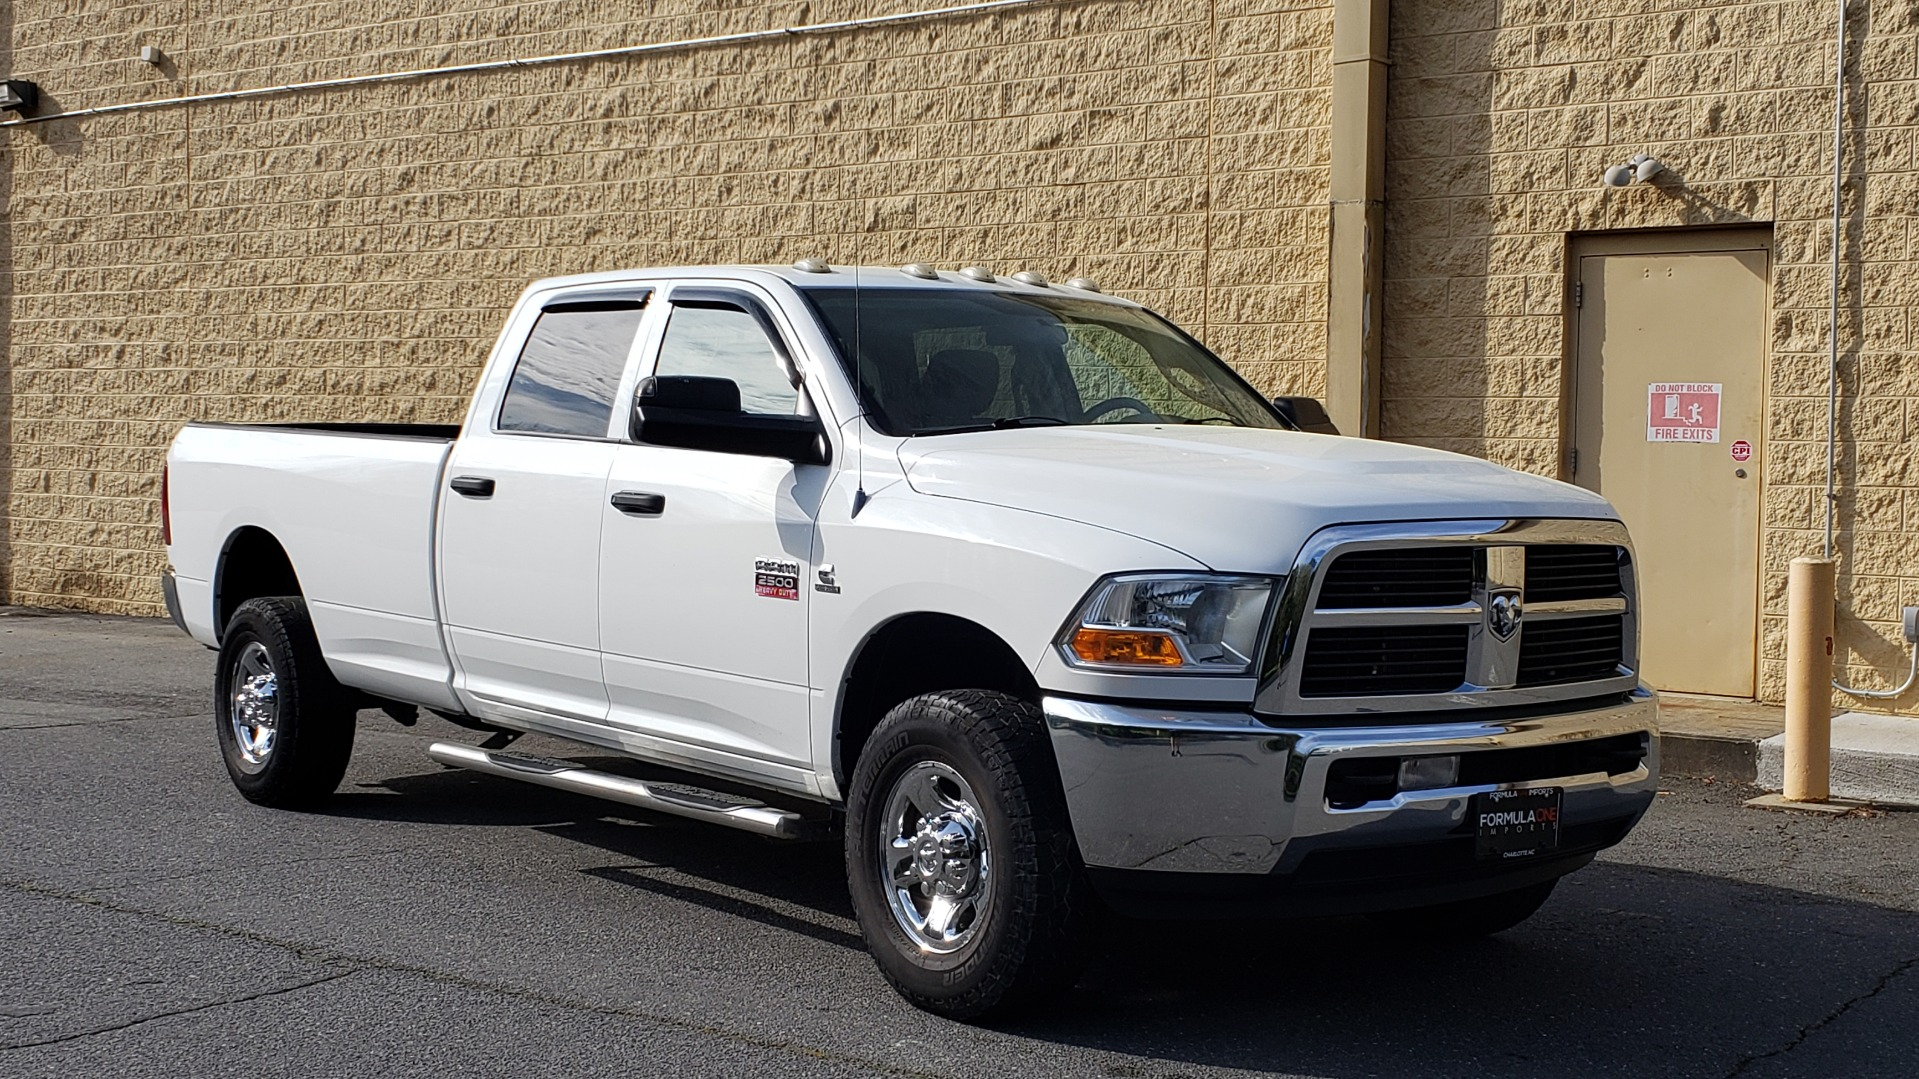 Used 2011 Ram 2500 4WD CREW CAB 169 ST / 6.7L CUMMINS / 6-SPD AUTO for sale Sold at Formula Imports in Charlotte NC 28227 4